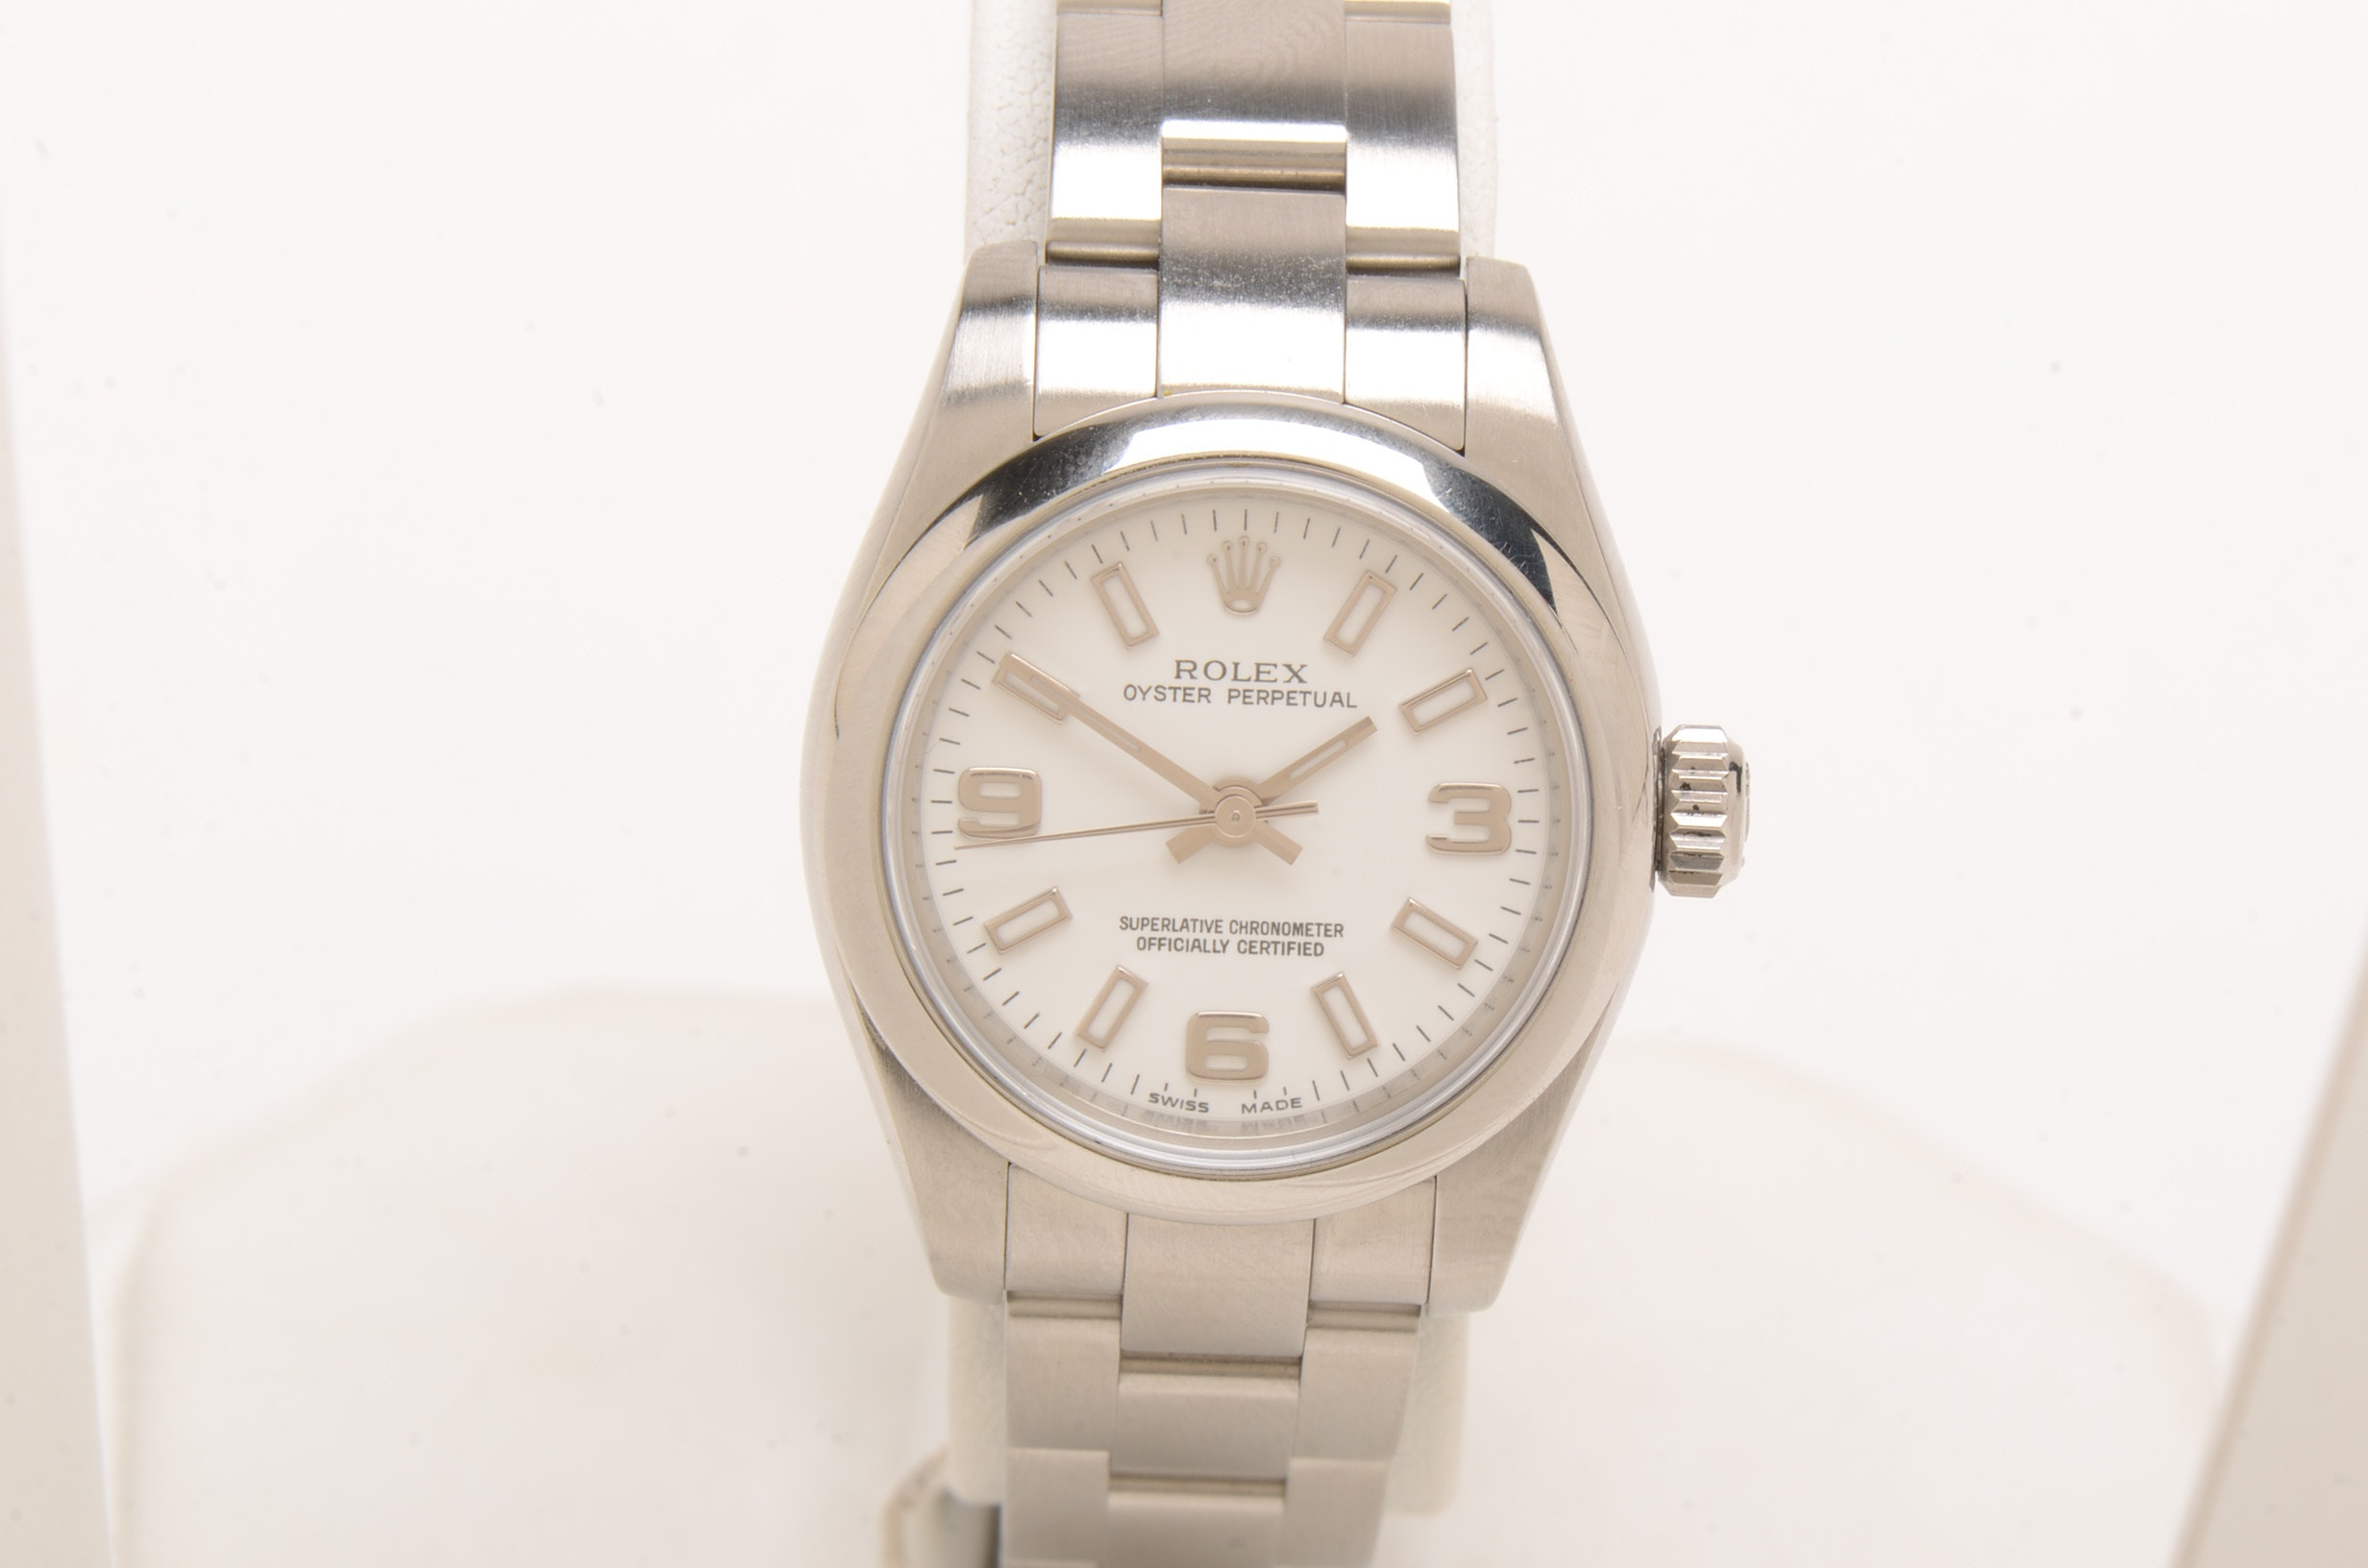 Rolex Oyster Perpetual White Automatic 26mm Stainless Steel Wristwatch